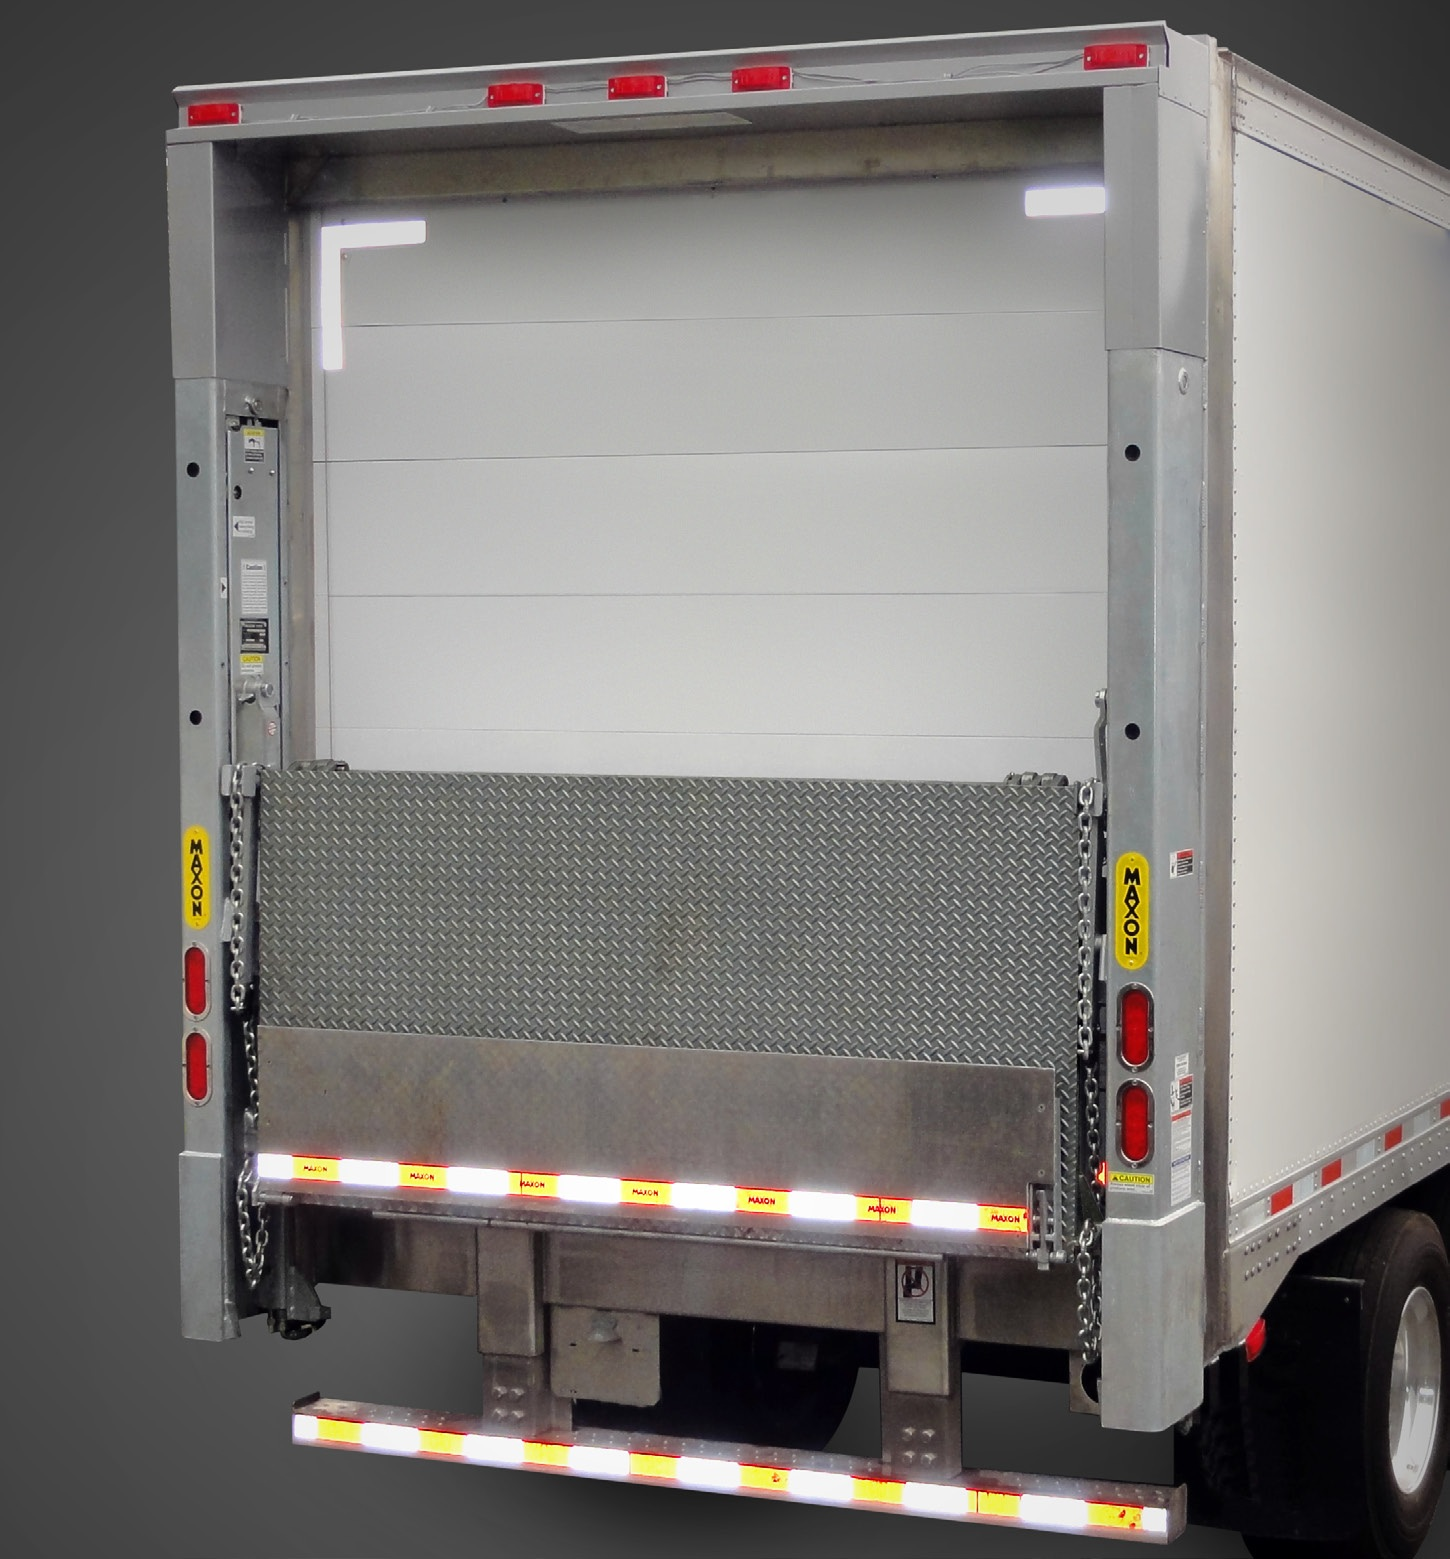 Commercial Truck Success Blog August 2012 Maxon Bmraw 44 Wiring Diagram Galvanized Liftgates Equals Maximum Protection With Minimum Investment